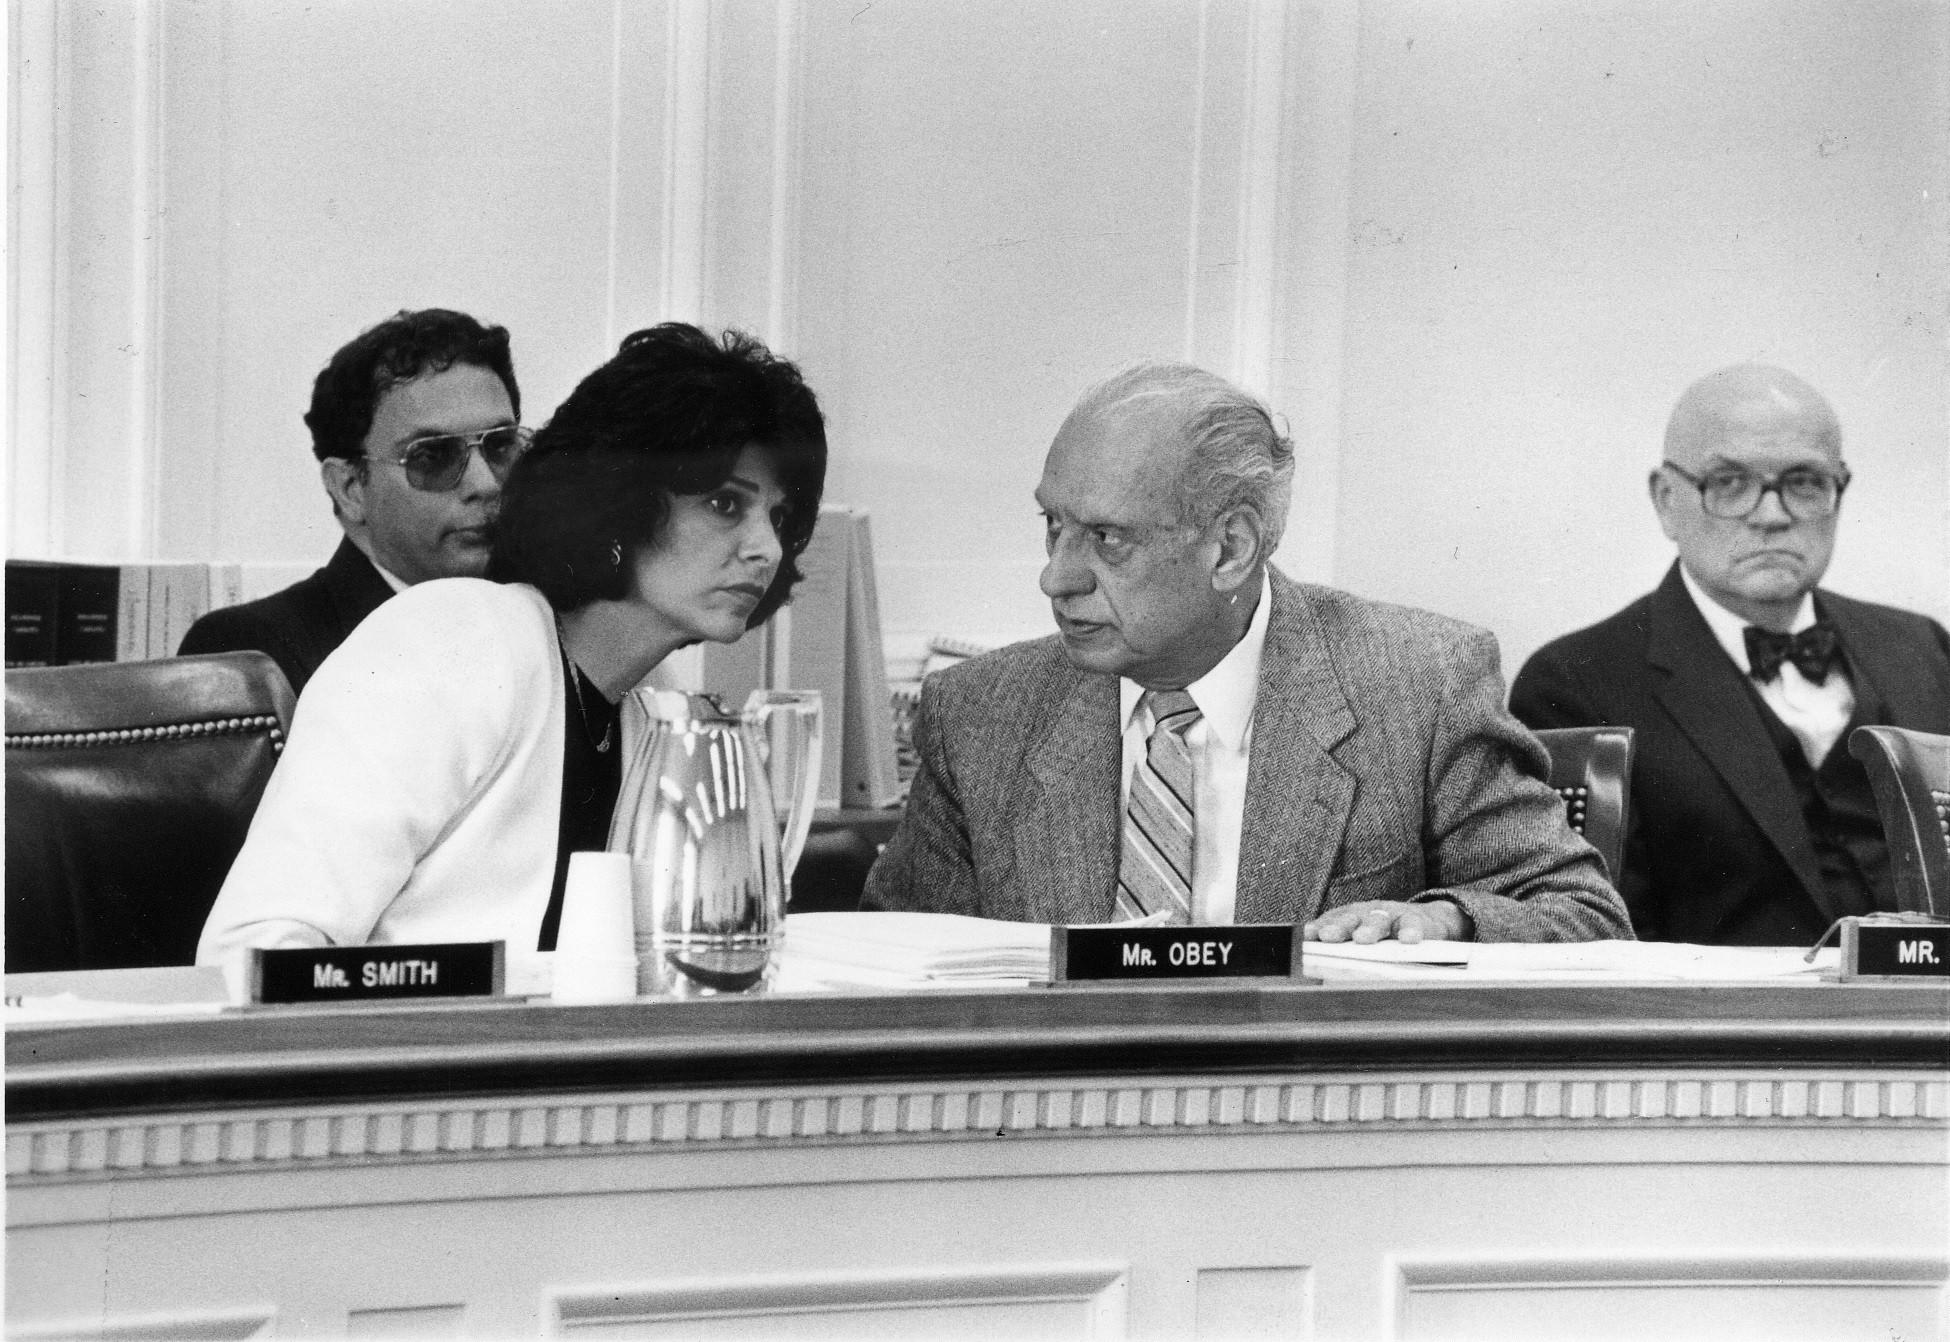 Before she was elected to Congress, Rep. Lucille Roybal-Allard sits in on a House Committee hearing with her father, Rep. Edward Roybal. He served for 30 years and retired just as his daughter took office.